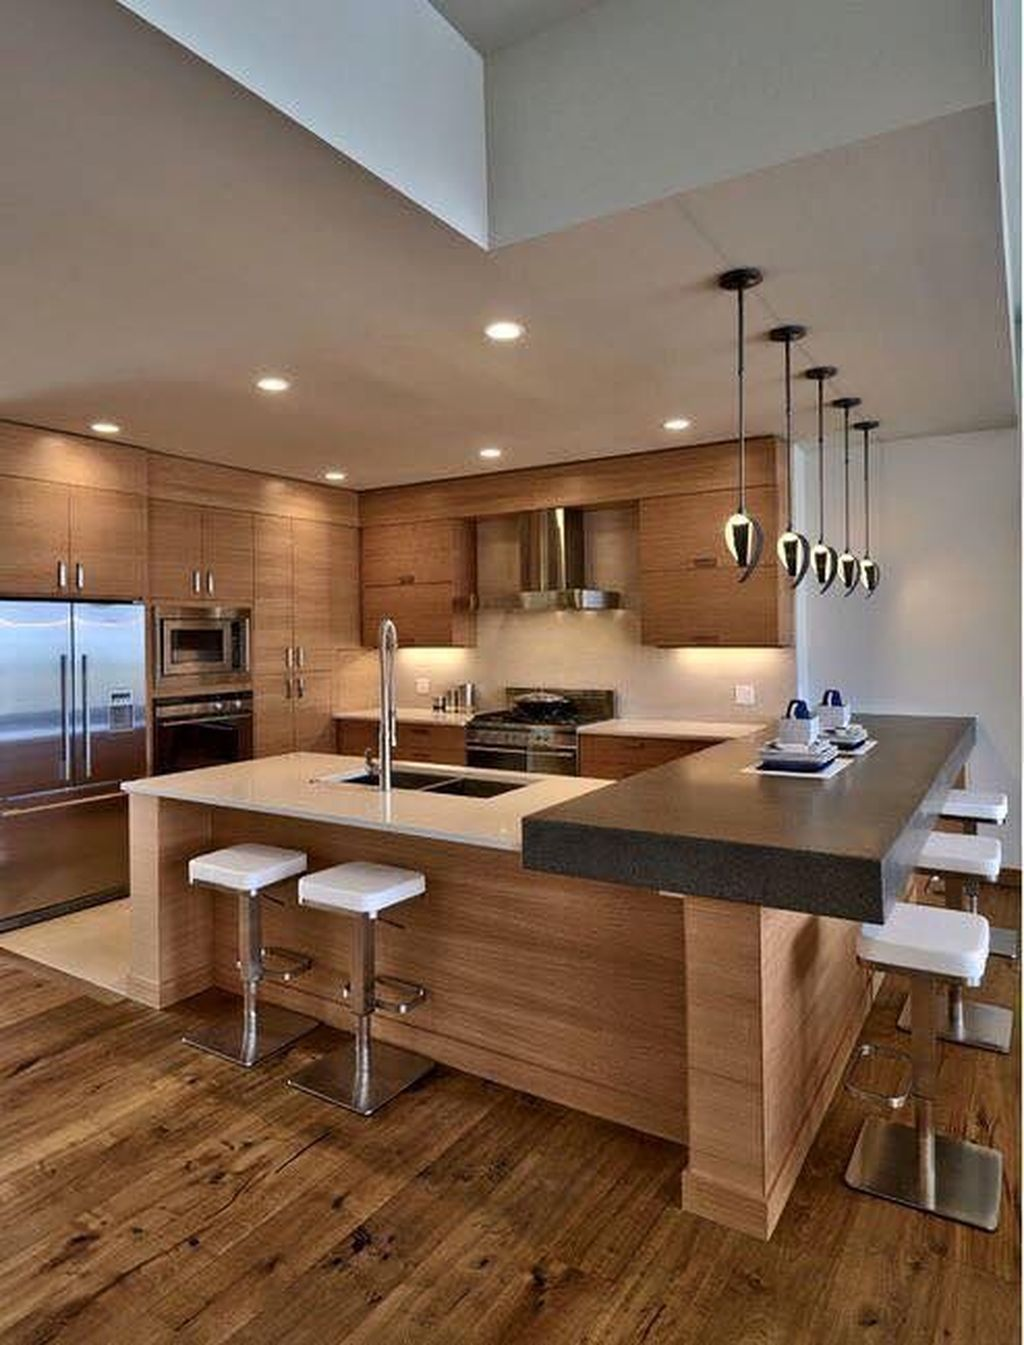 Awesome modern but simple kitchen design ideas more at